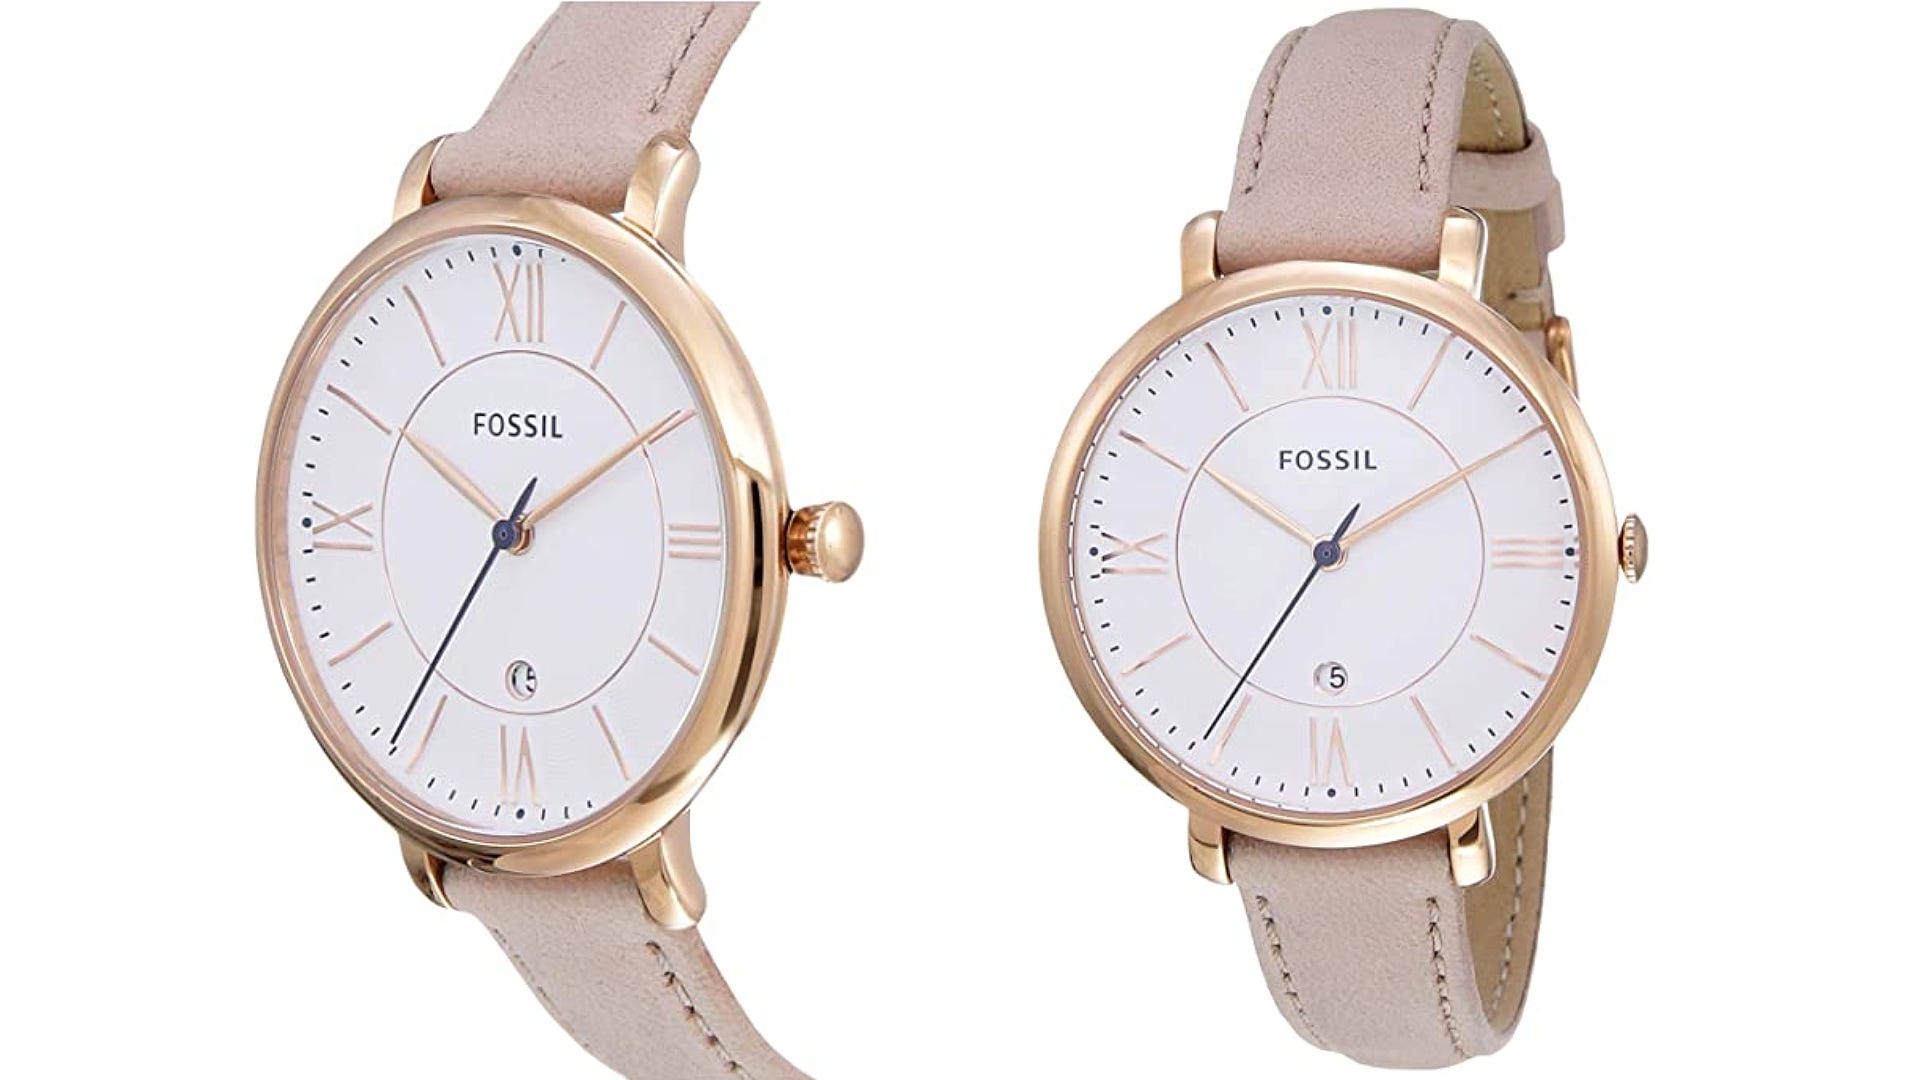 dual views side and front blush colored leather strap gold watch